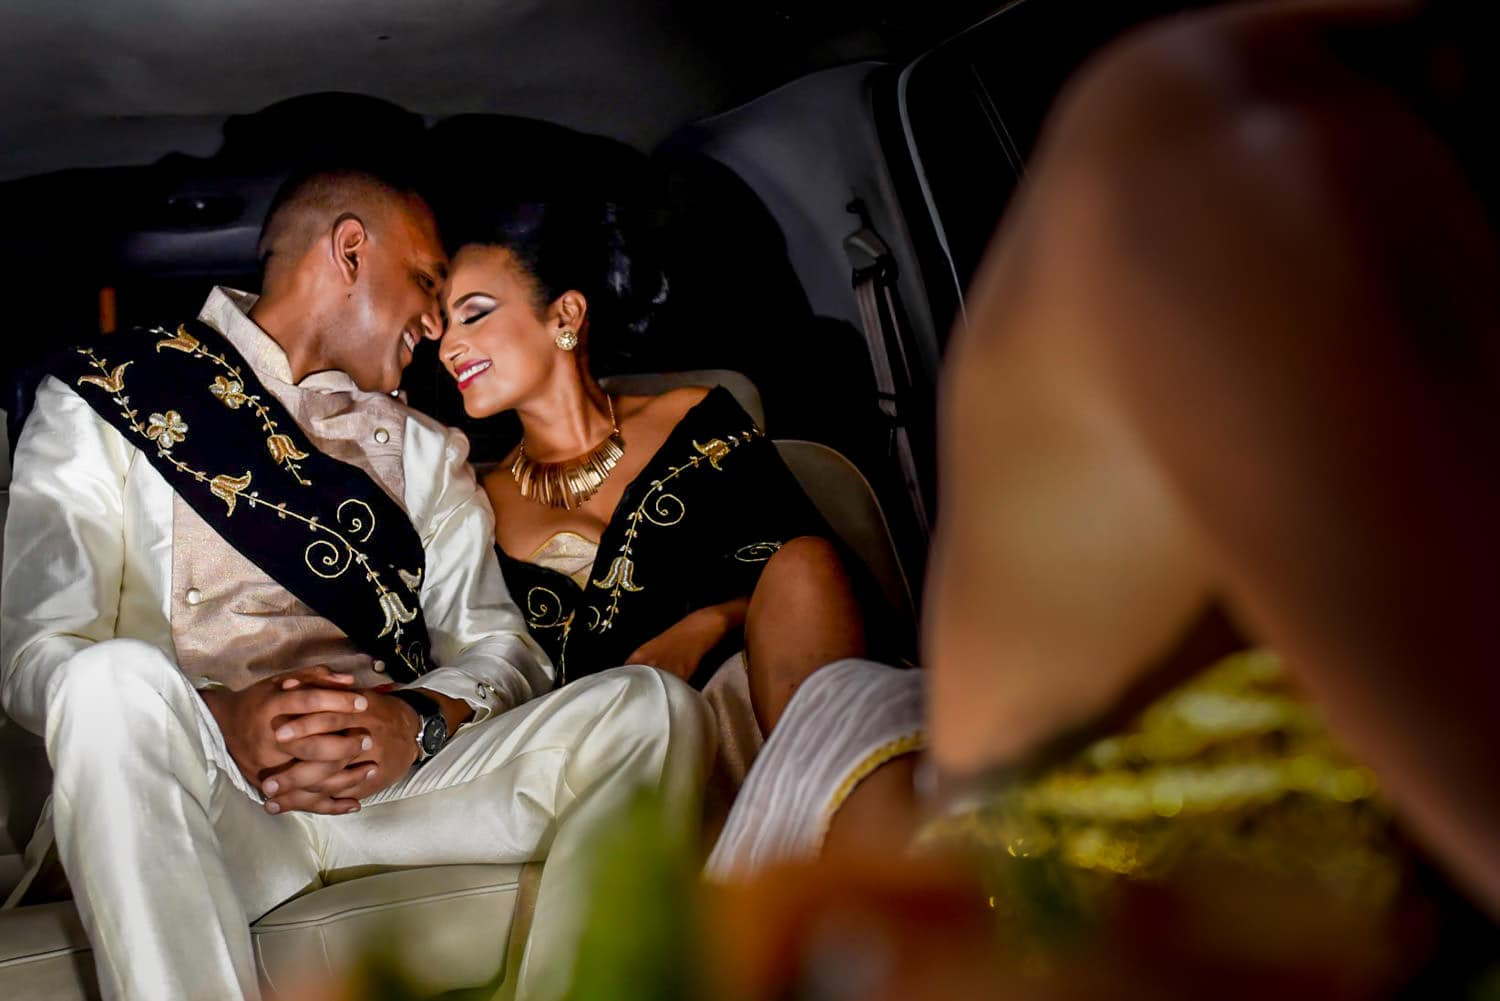 Ethiopian Bride and groom enjoying a quite moment at the back of the limo